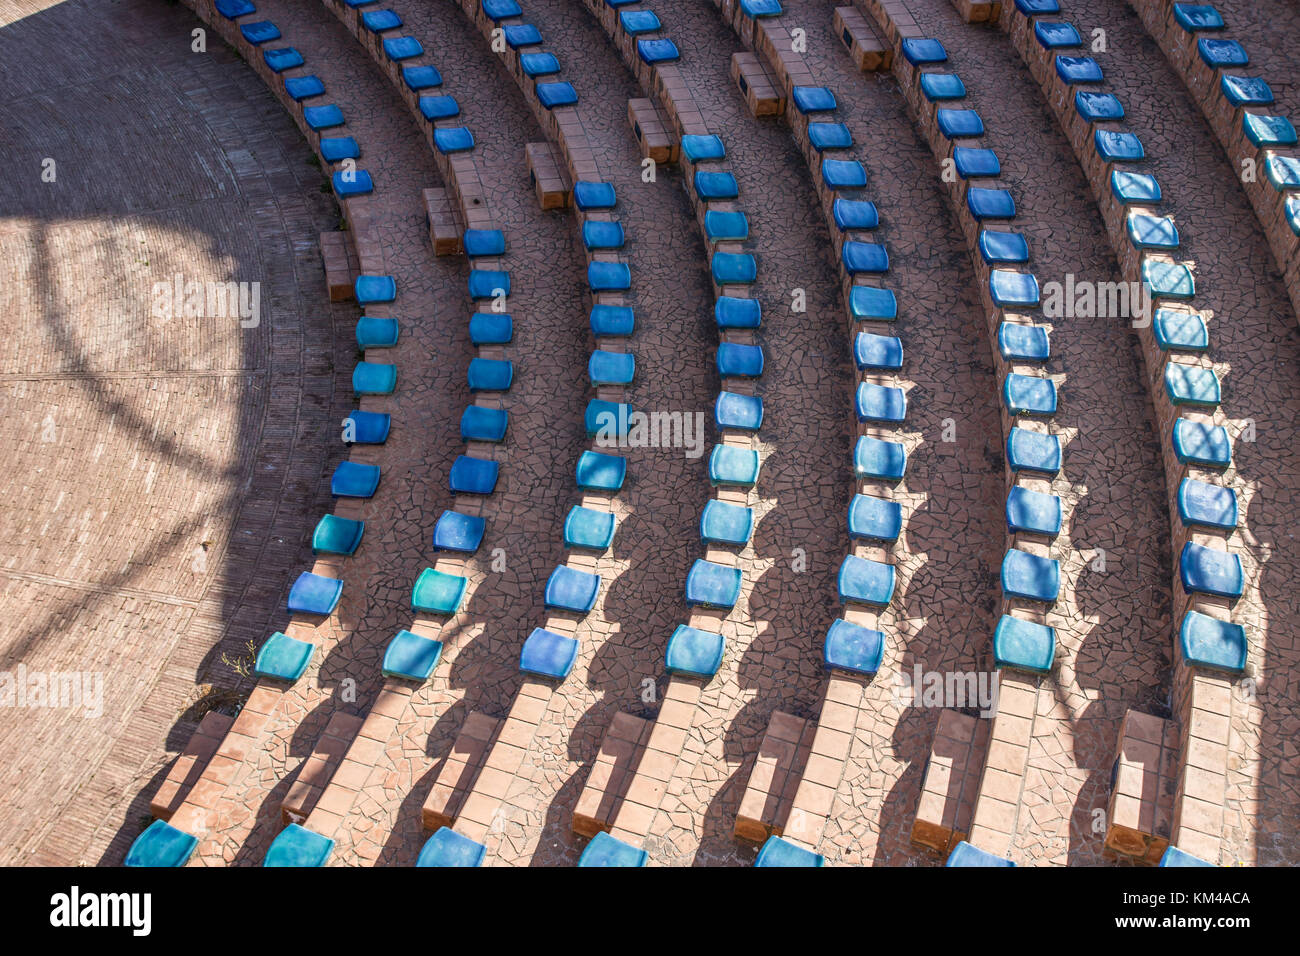 Vietri sul mare in Amalfi coast, public theatre arena, seats constructed entirely of ceramic, italy Stock Photo